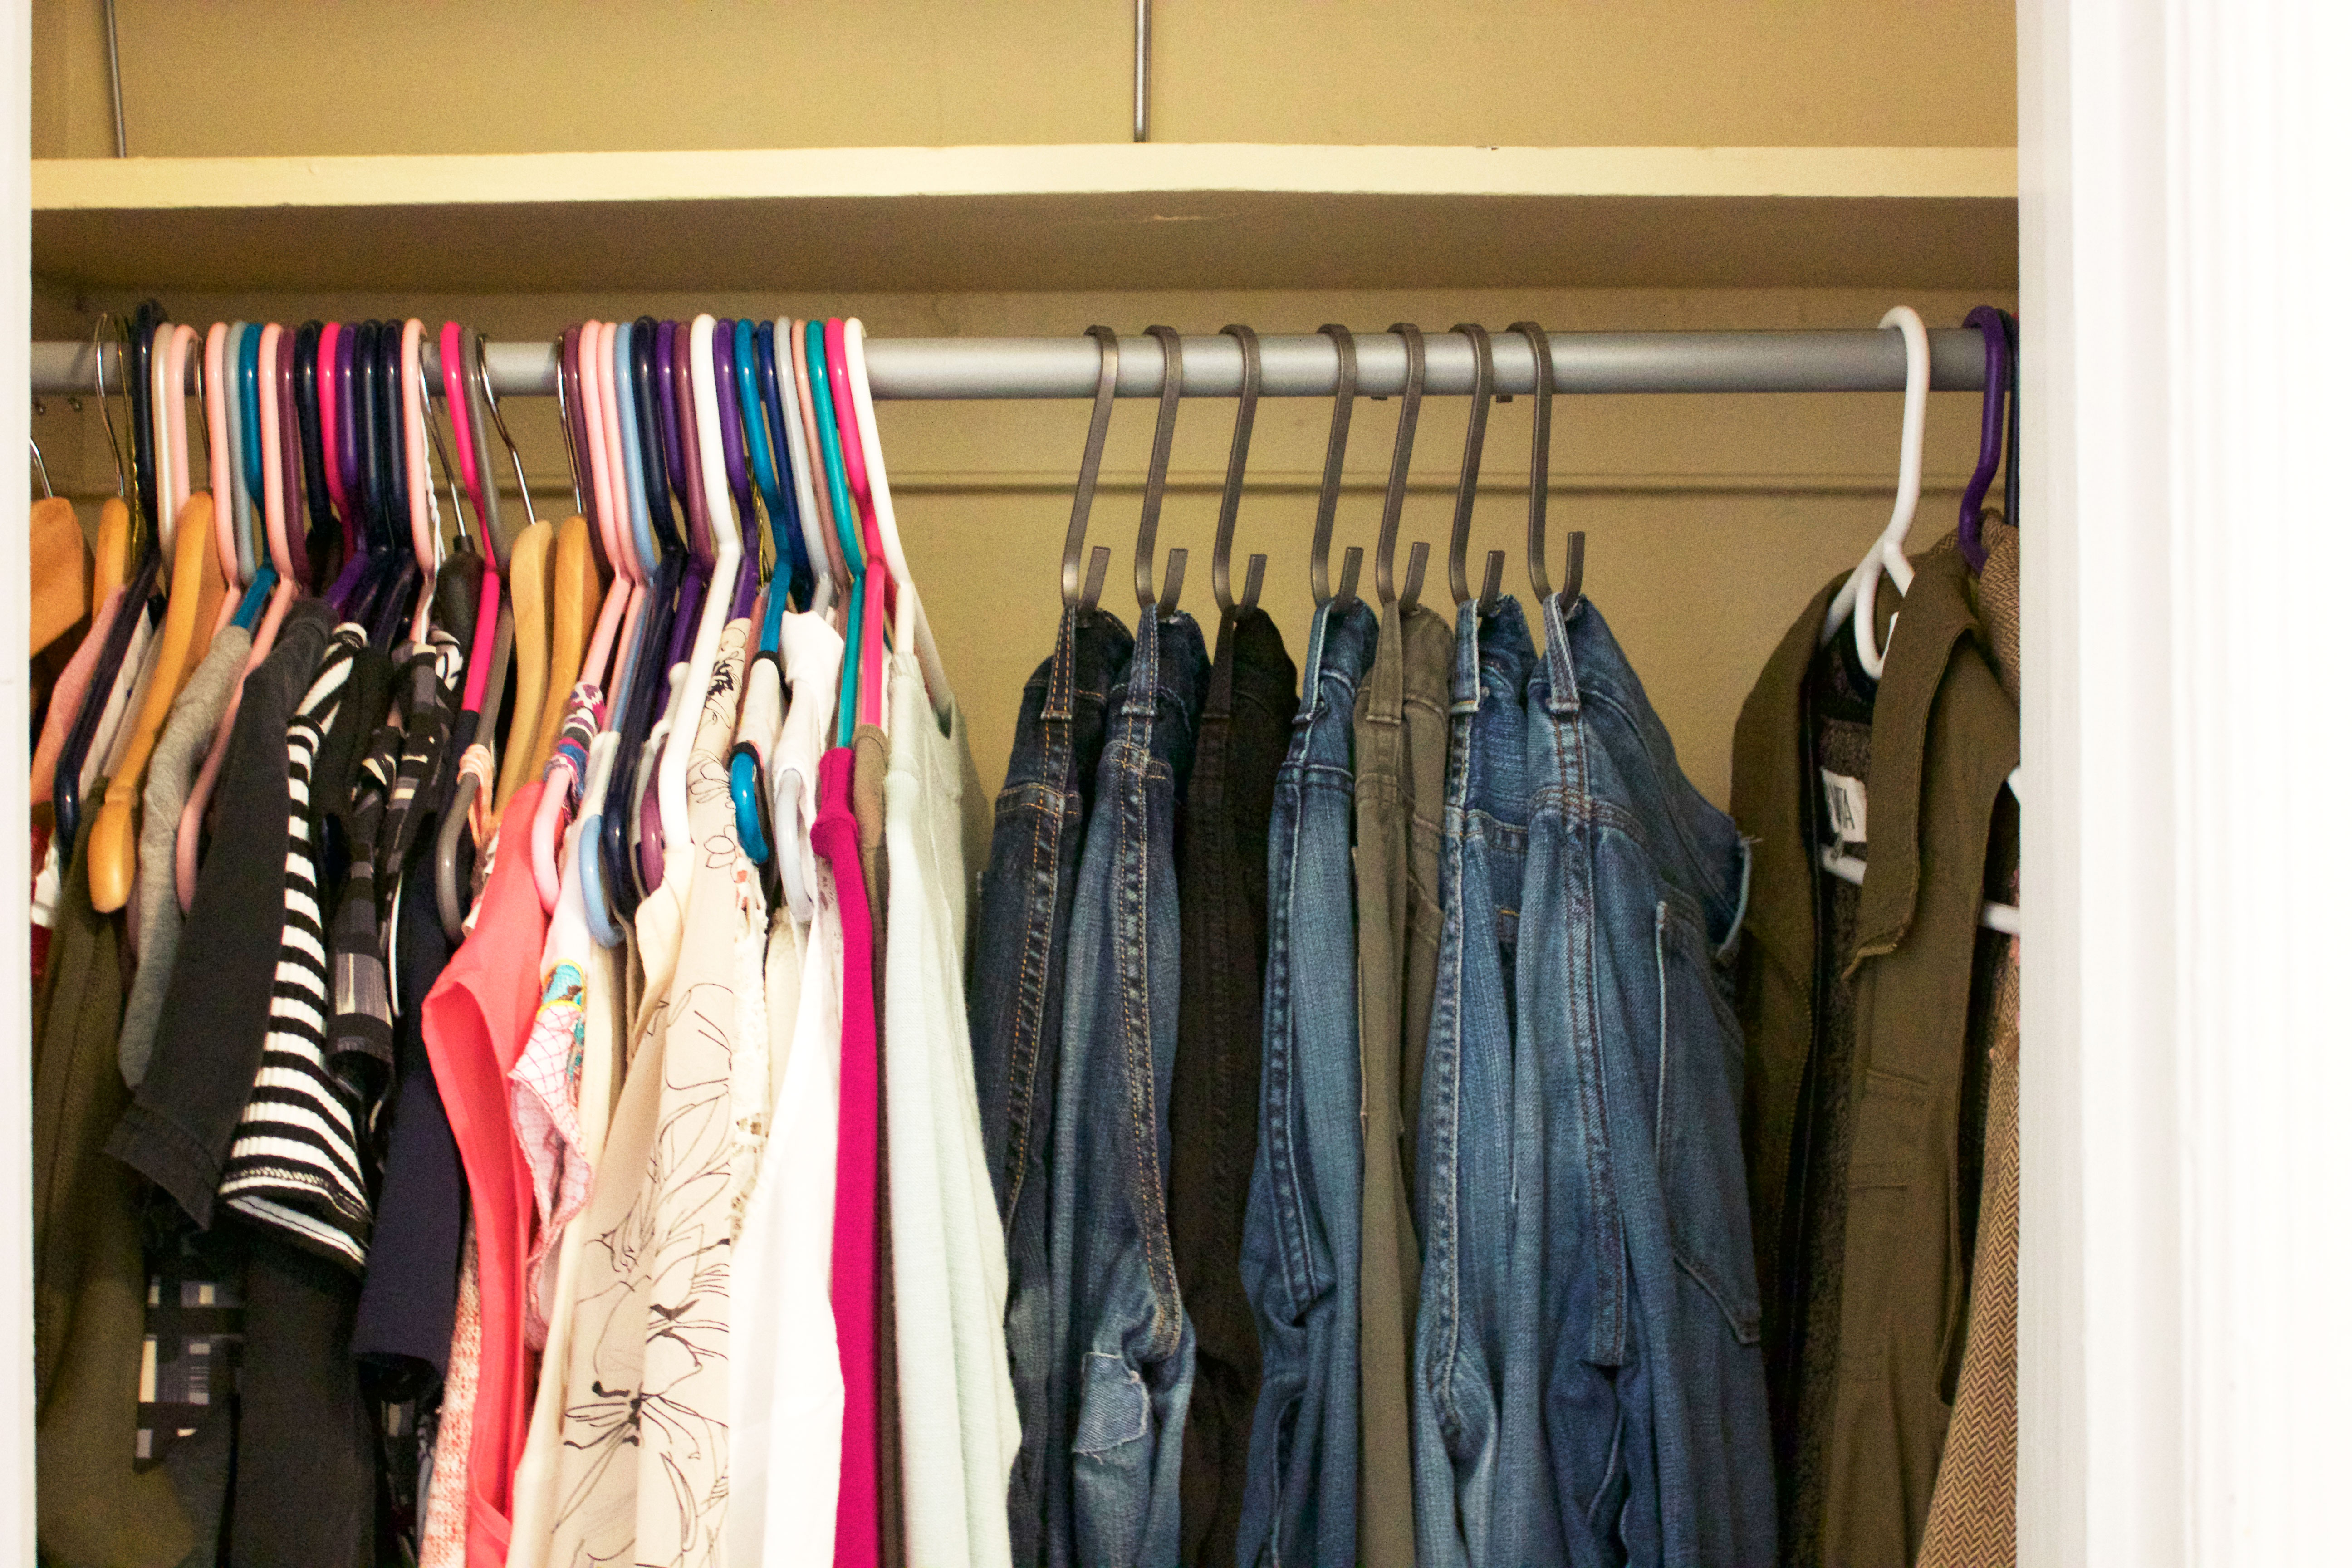 A Clean Organized Closet With Jeans Hanging On Hooks And Shirts Hangers